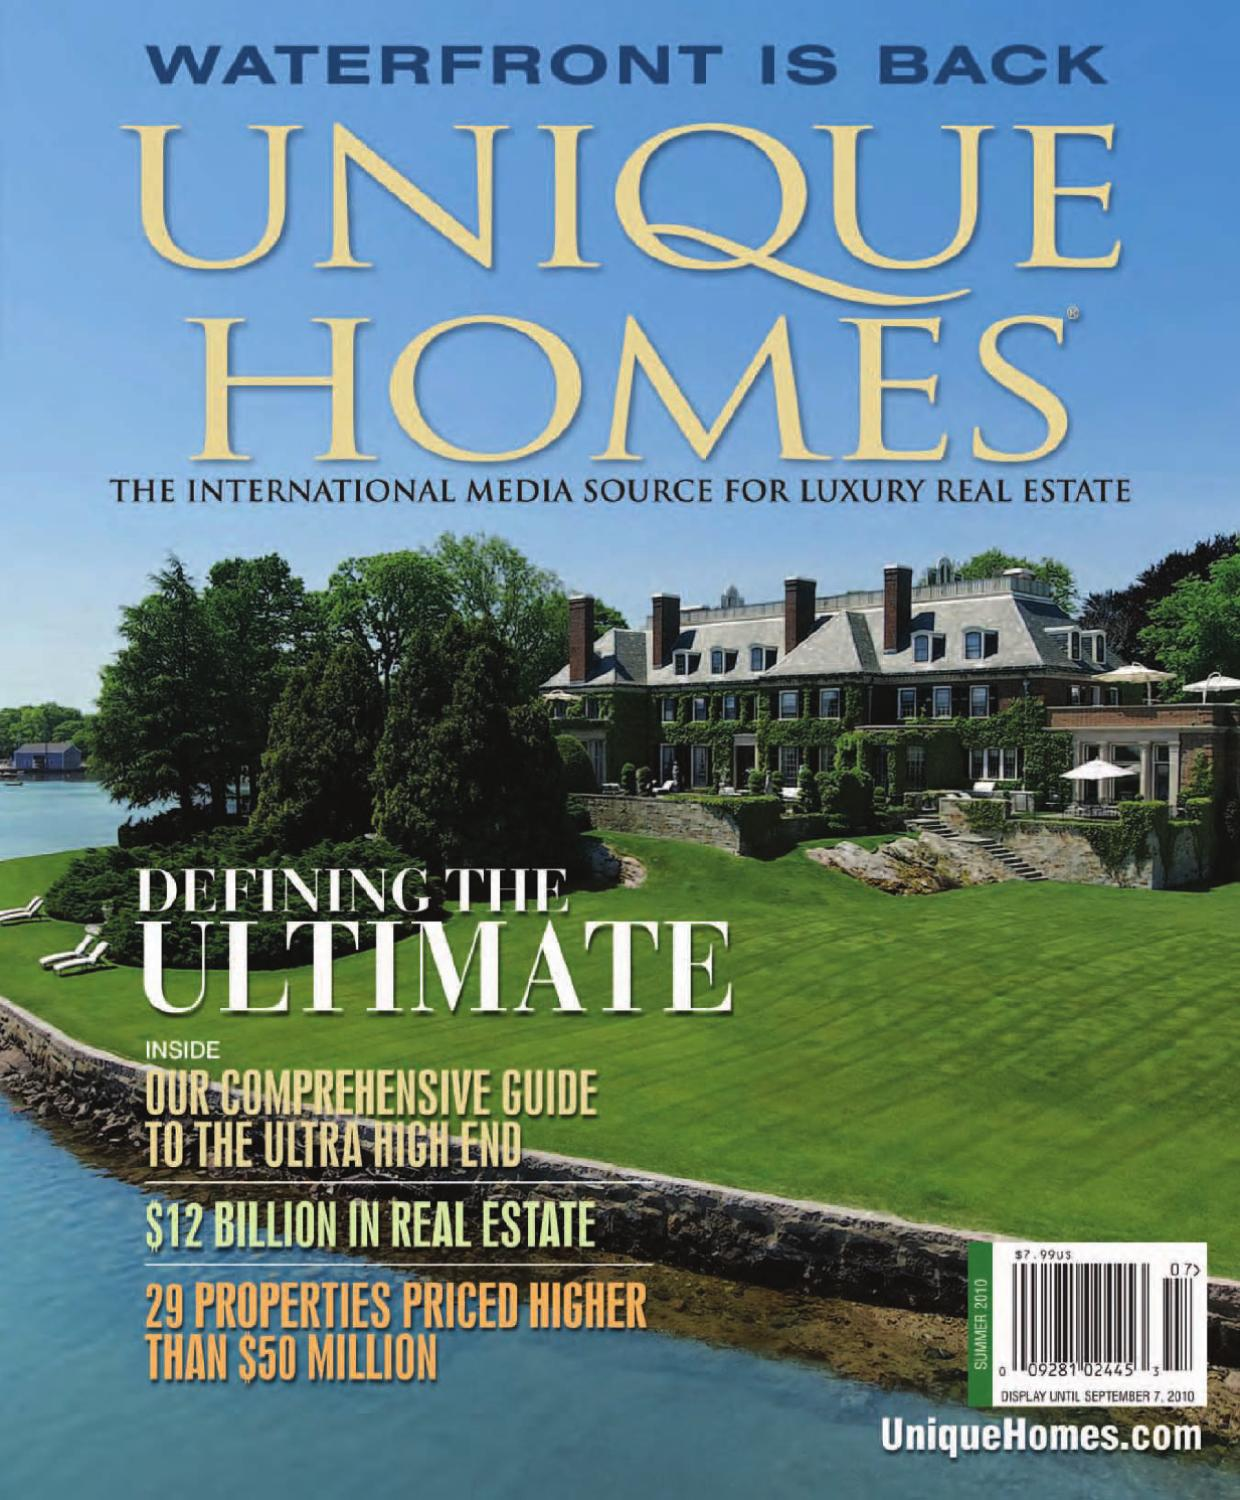 Unique Homes By Network Communications, Inc.